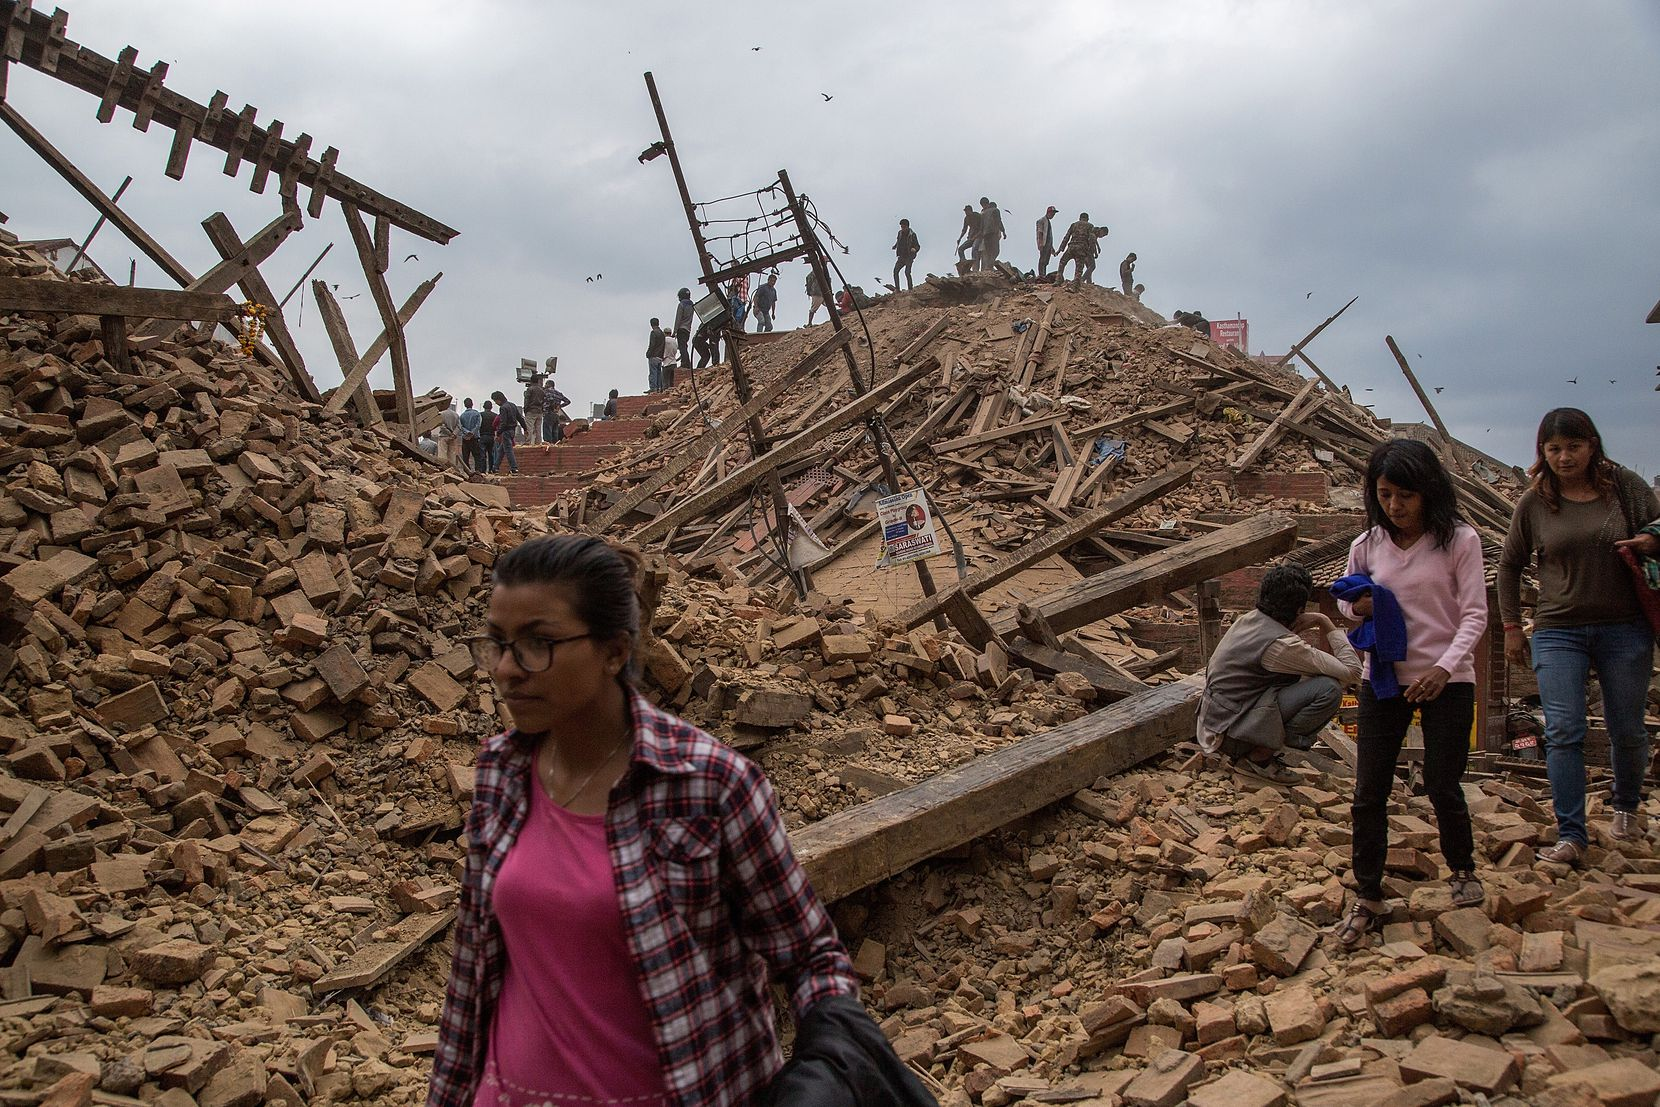 KATHMANDU, NEPAL - APRIL 25: People stand on top of debris from a collapsed building at Basantapur Durbar Square watching the destruction following an earthquake on April 25, 2015 in Kathmandu, Nepal. A major 7.8 earthquake hit Kathmandu mid-day on Saturday, and was followed by multiple aftershocks that triggered avalanches on Mt. Everest that buried mountain climbers in their base camps. Many houses, buildings and temples in the capital were destroyed during the earthquake, leaving hundreds dead or trapped under the debris as emergency rescue workers attempt to clear debris and find survivors.  (Photo by Omar Havana/Getty Images) *** BESTPIX ***